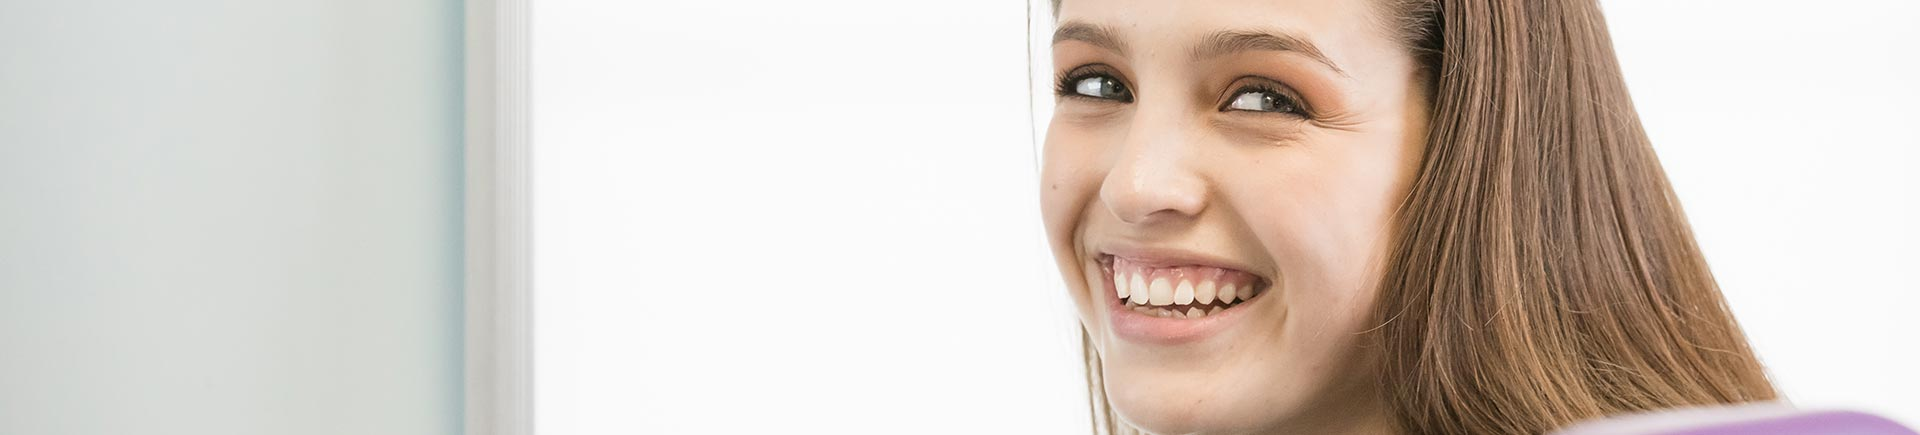 Satisfied teenage girl with perfect smile after orthodontic treatment.